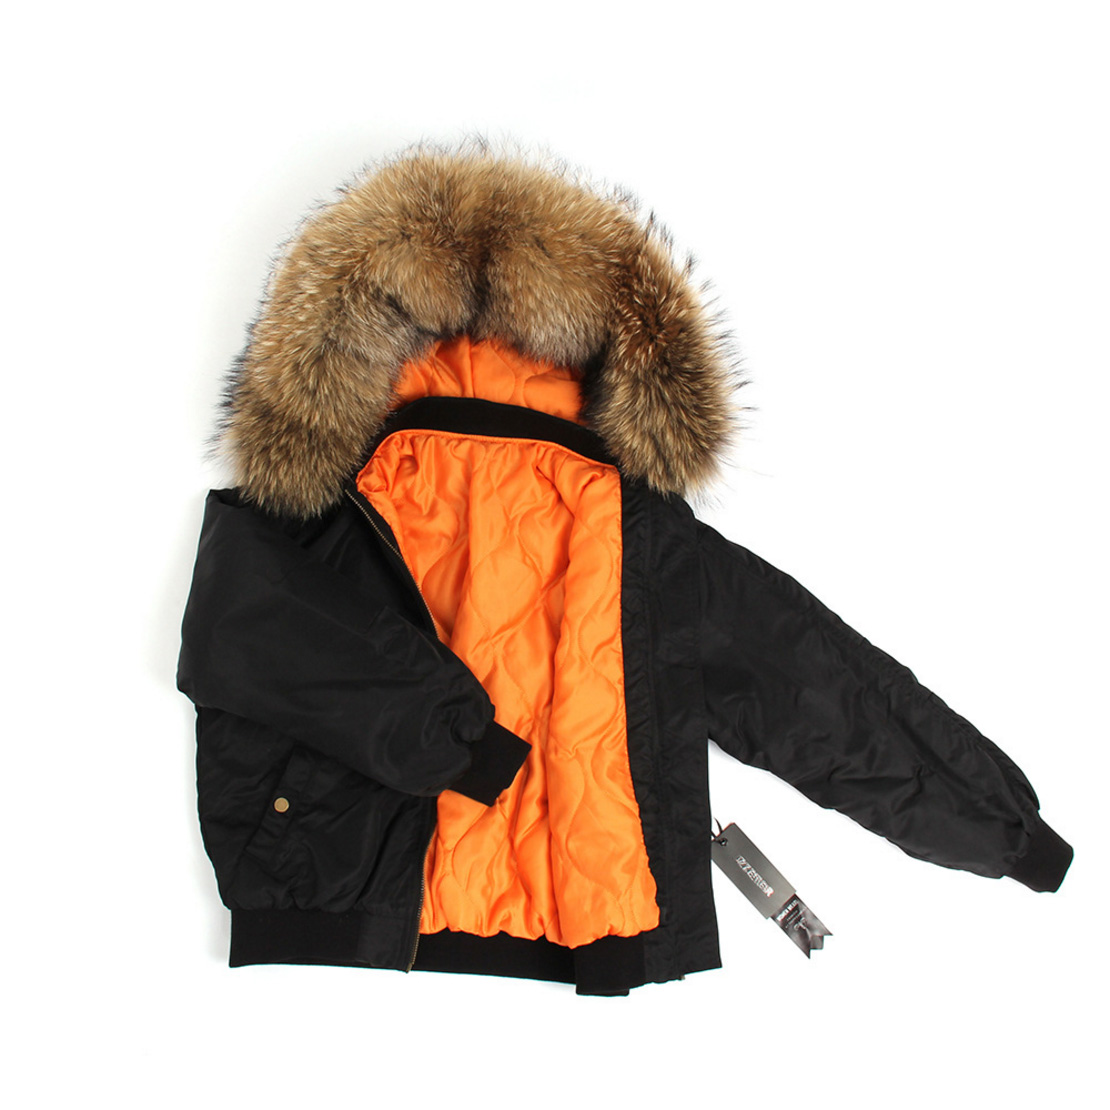 Raccoon Fur Trimmed Hooded Cotton-padded Jacket 129 Details 11